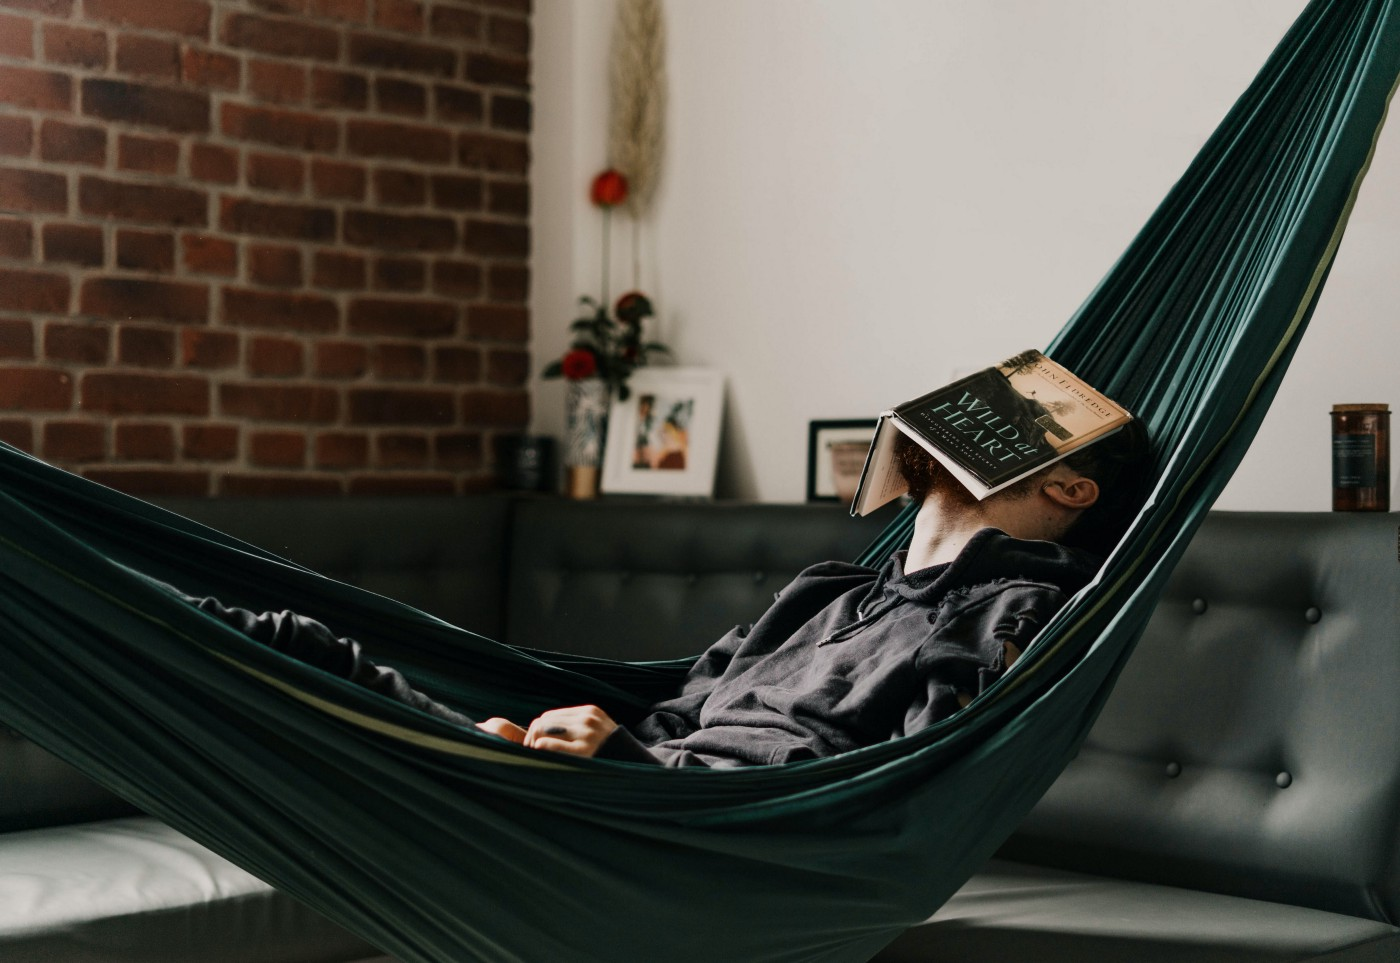 Millennial sits in hammock contemplating existential dread during 2020 quarantine